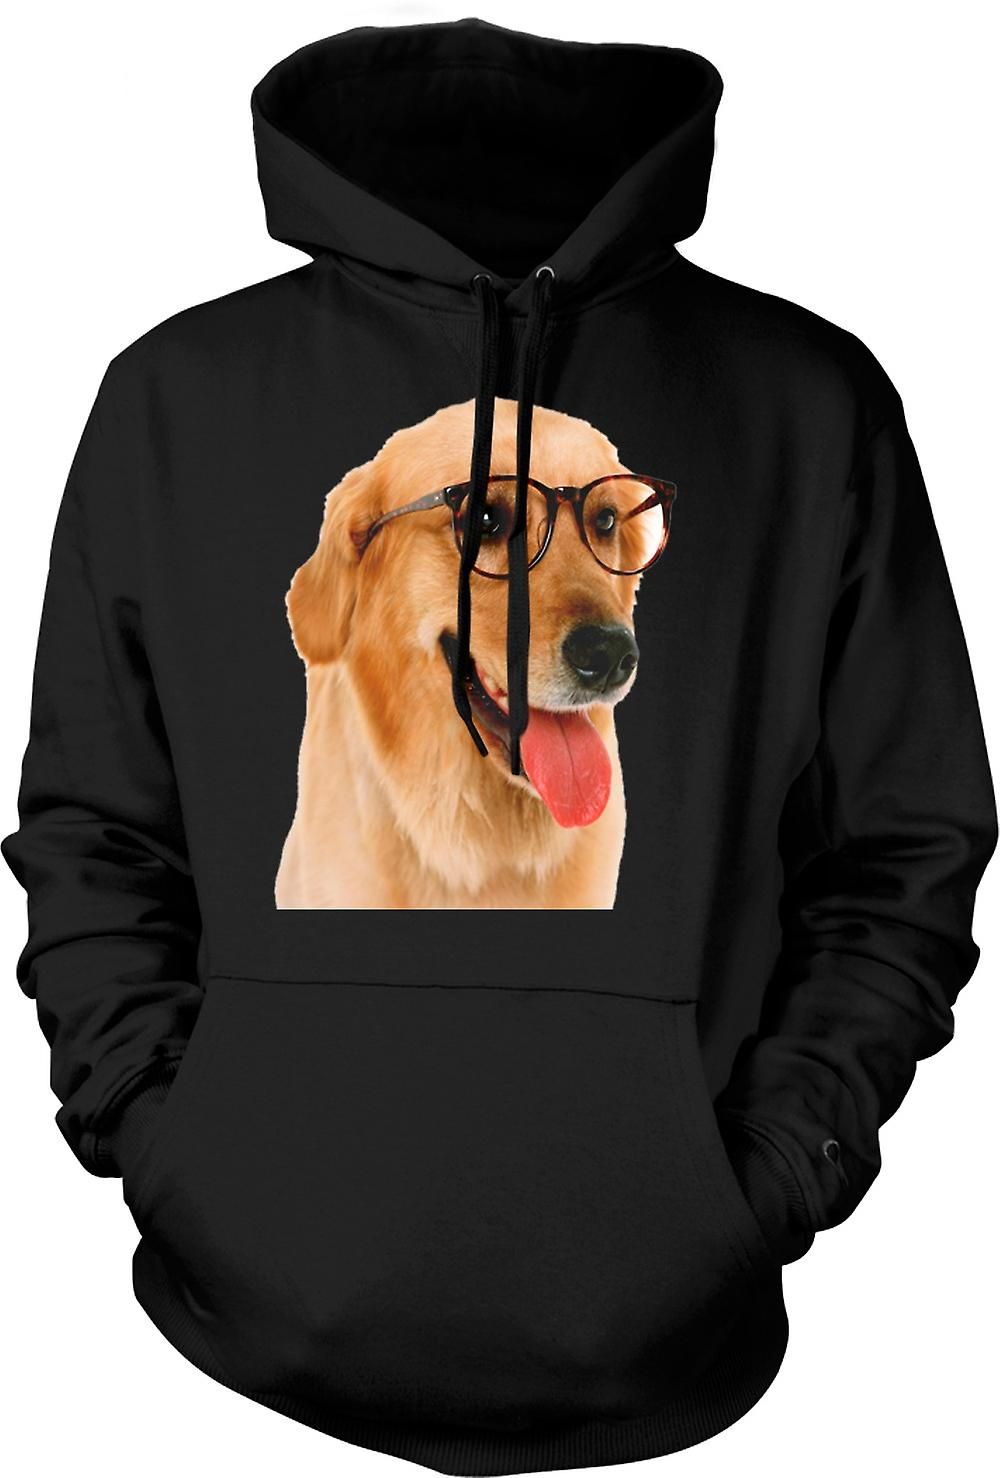 Mens Hoodie - Labrador With Glasses - Funny